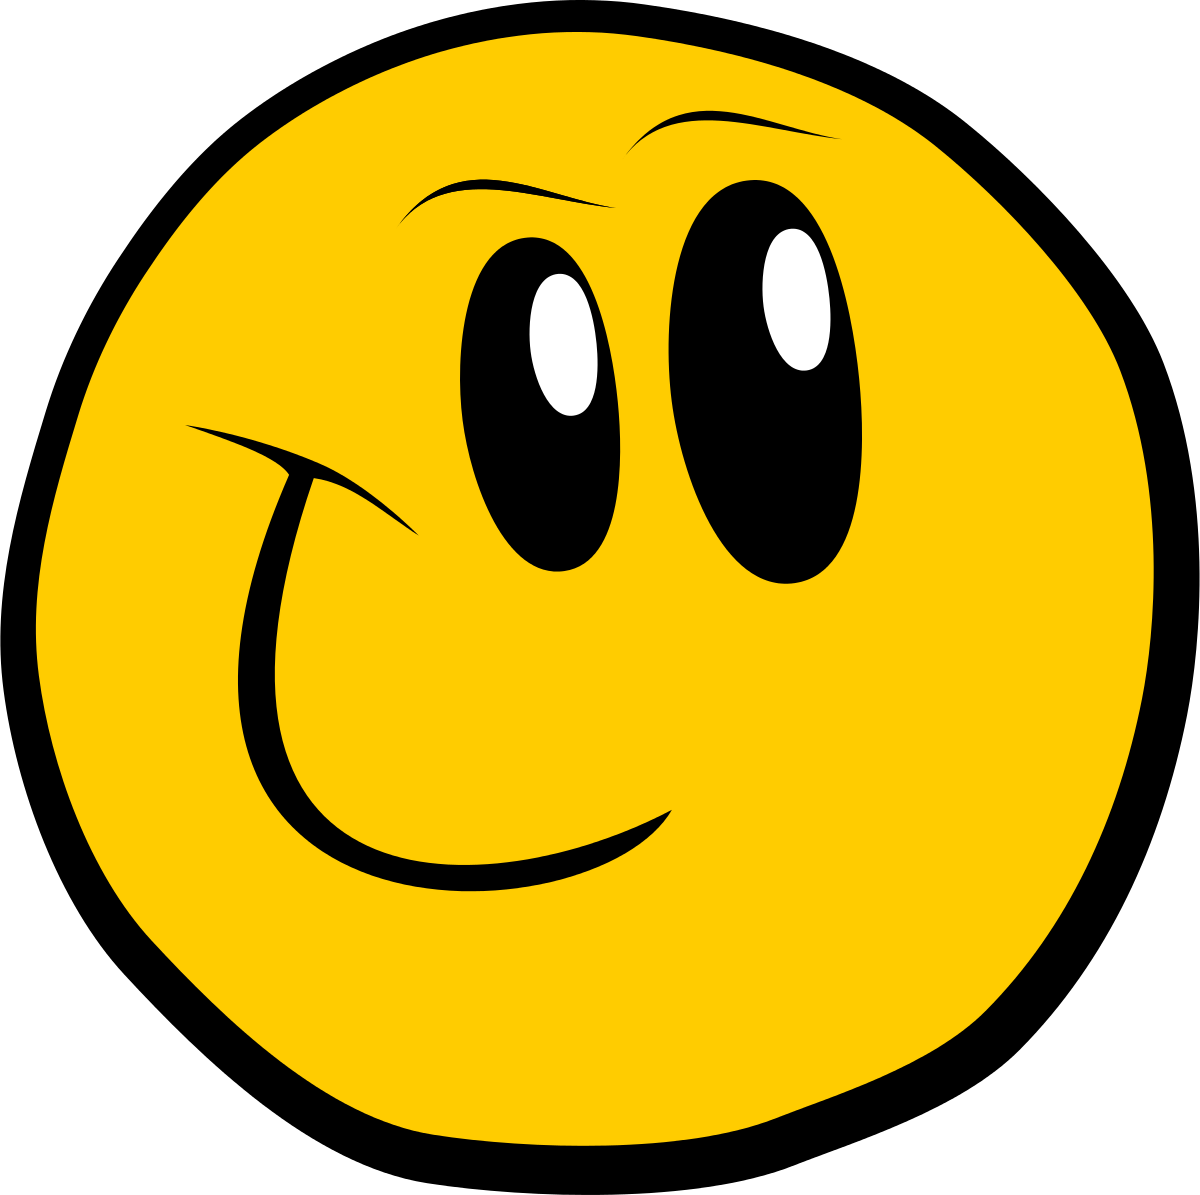 Smiley Face Clip Art Yearbook